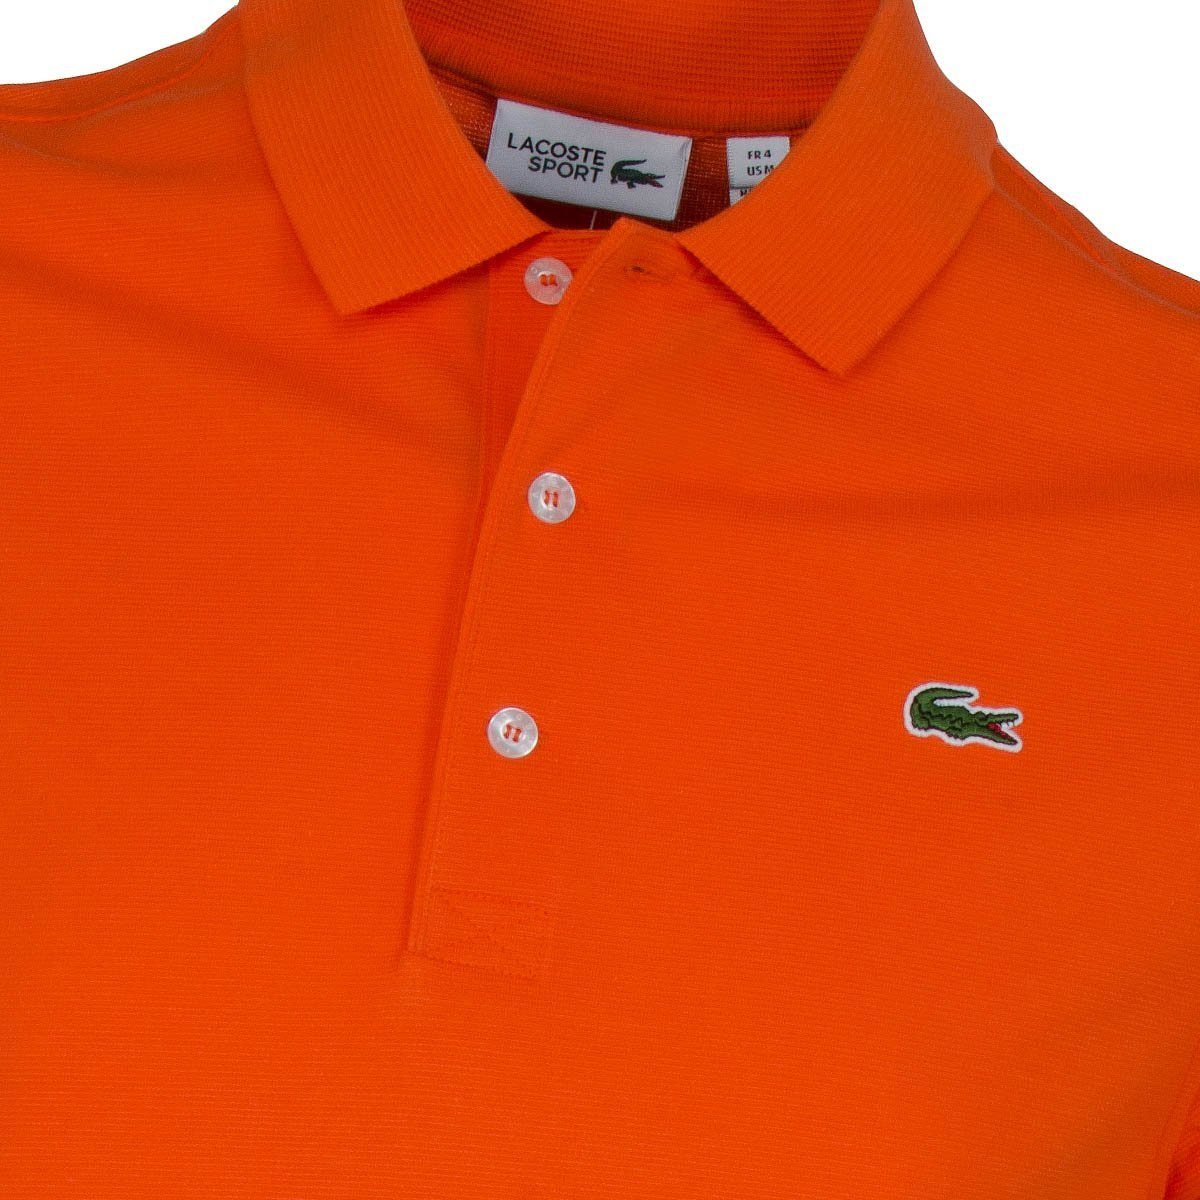 Polo Lacoste L1230 00 p40 orange bouee cotone elasten regular ...